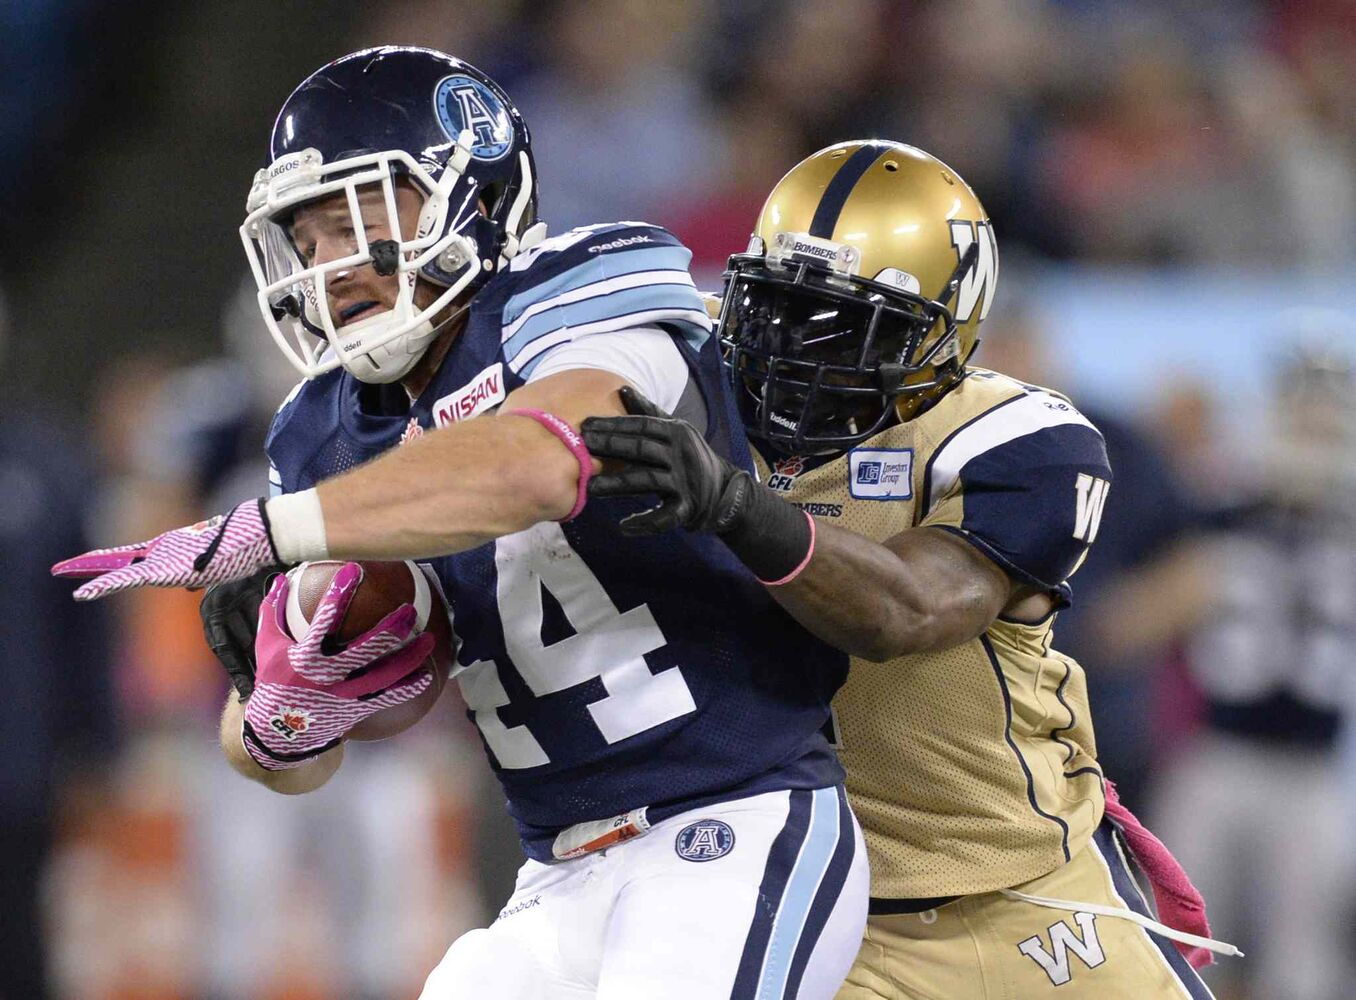 Toronto Argonauts' Chad Kackert runs the ball as a Winnipeg Blue Bombers player defends during the first quarter.